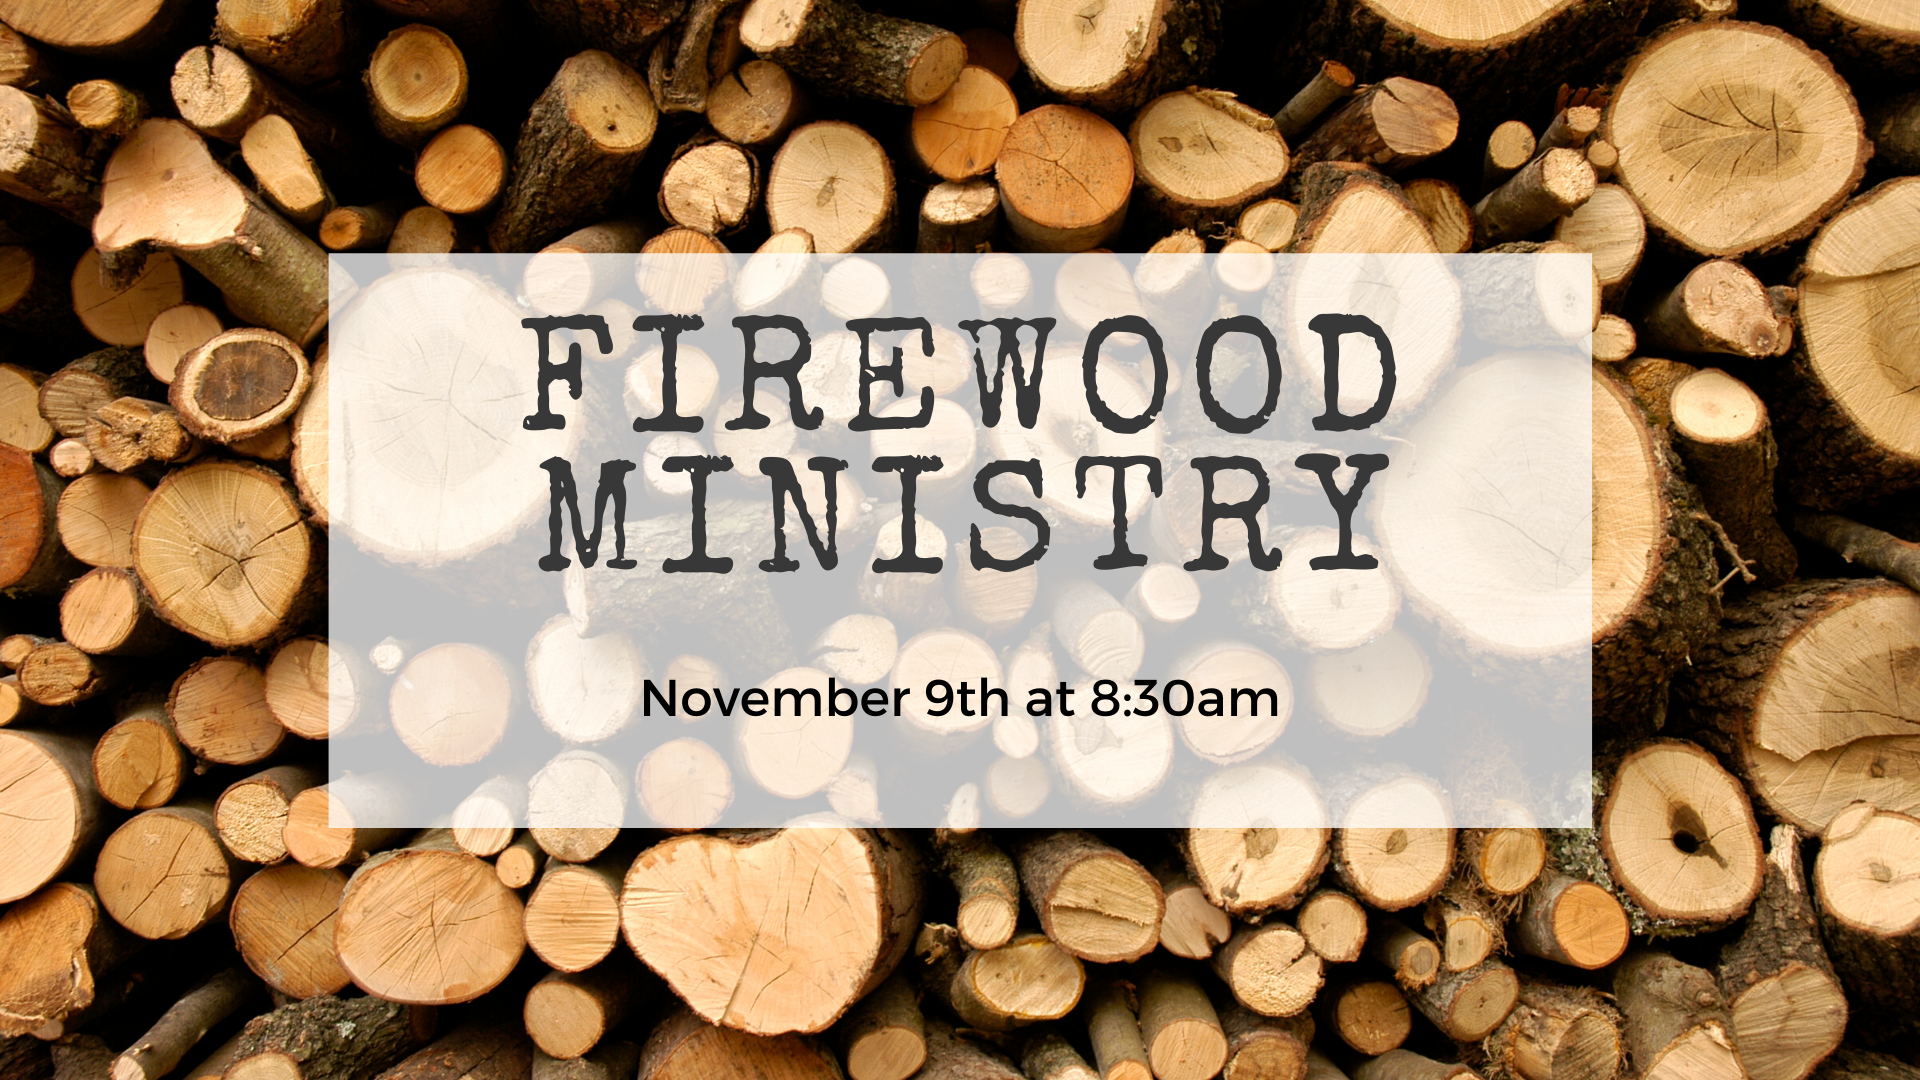 Firewood ministry image